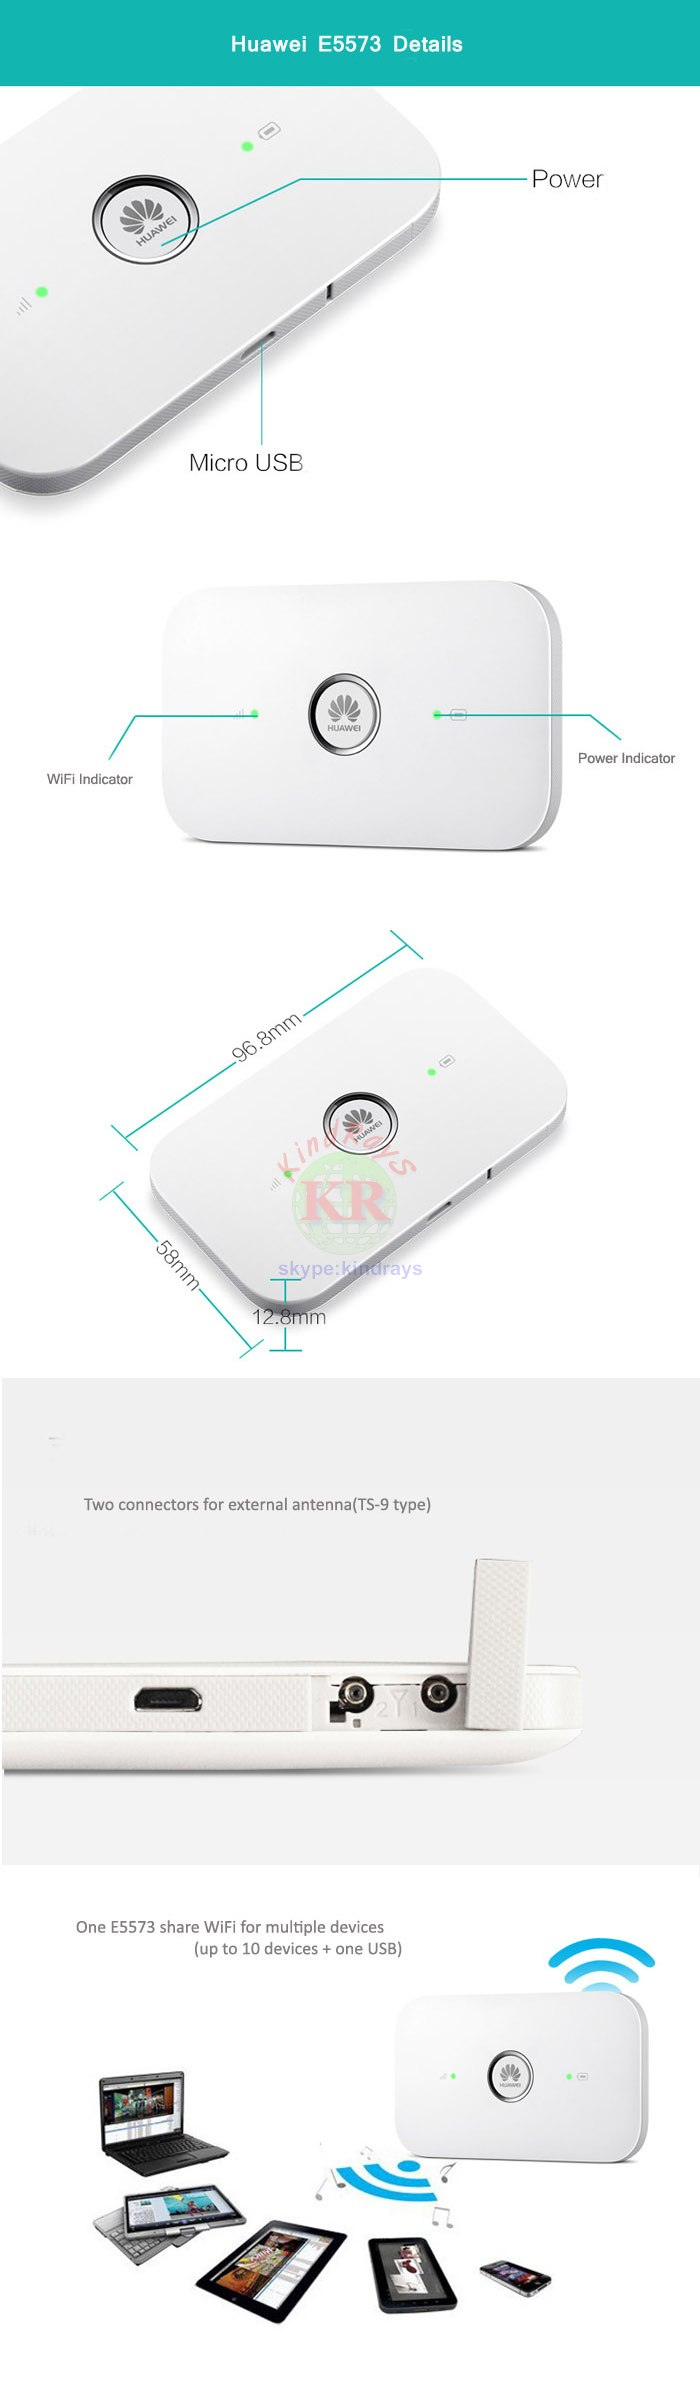 Unlocked E5573 E5573s-606 CAT4 150M 4G LTE FDD 700/1800/2100/2600MHz TDD  2300MHz 3G WiFi Router Wireless Mobile Wi Fi